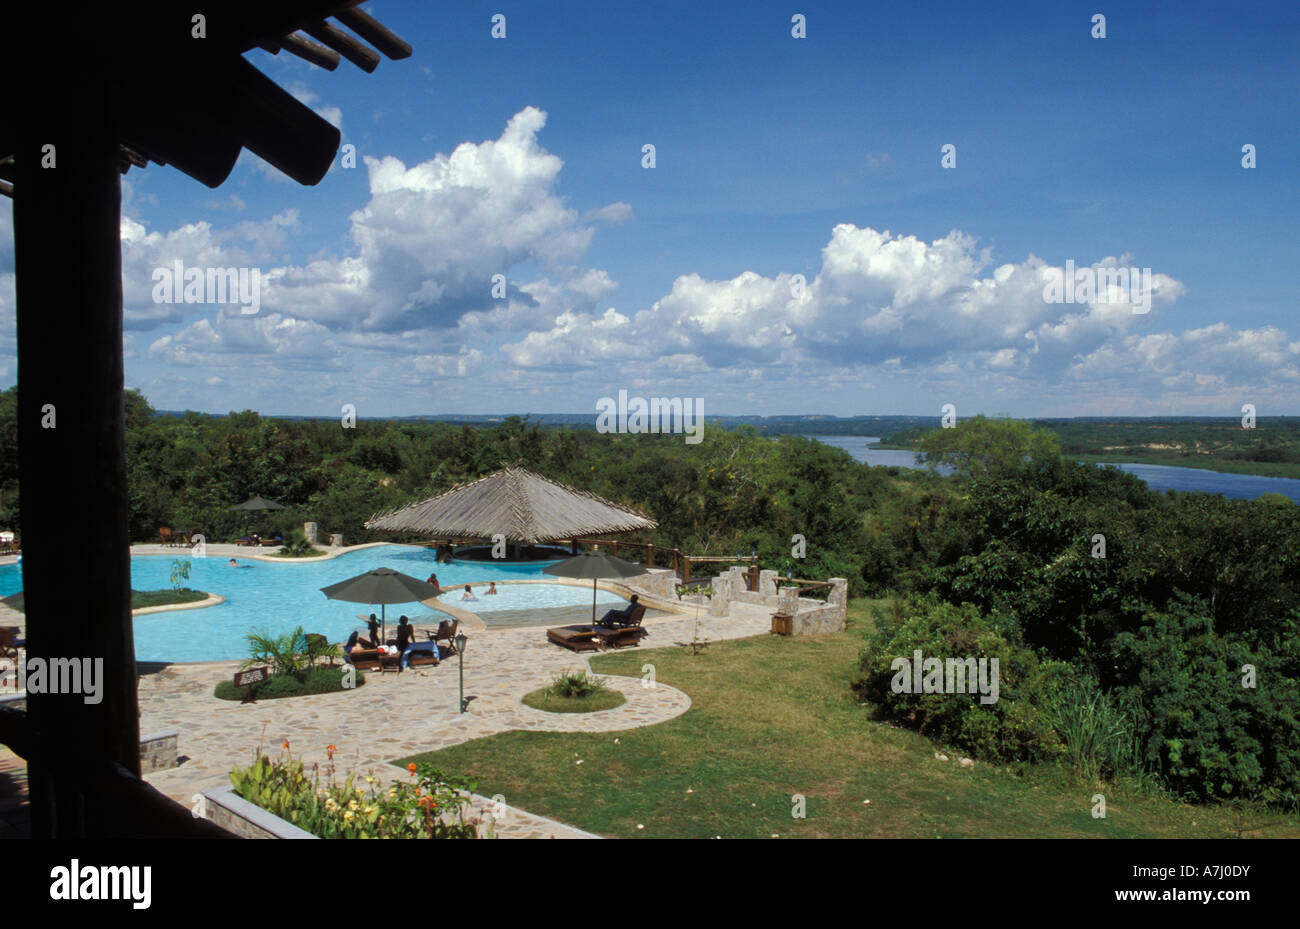 Paraa stock photos paraa stock images alamy - Swimming pools in great falls montana ...